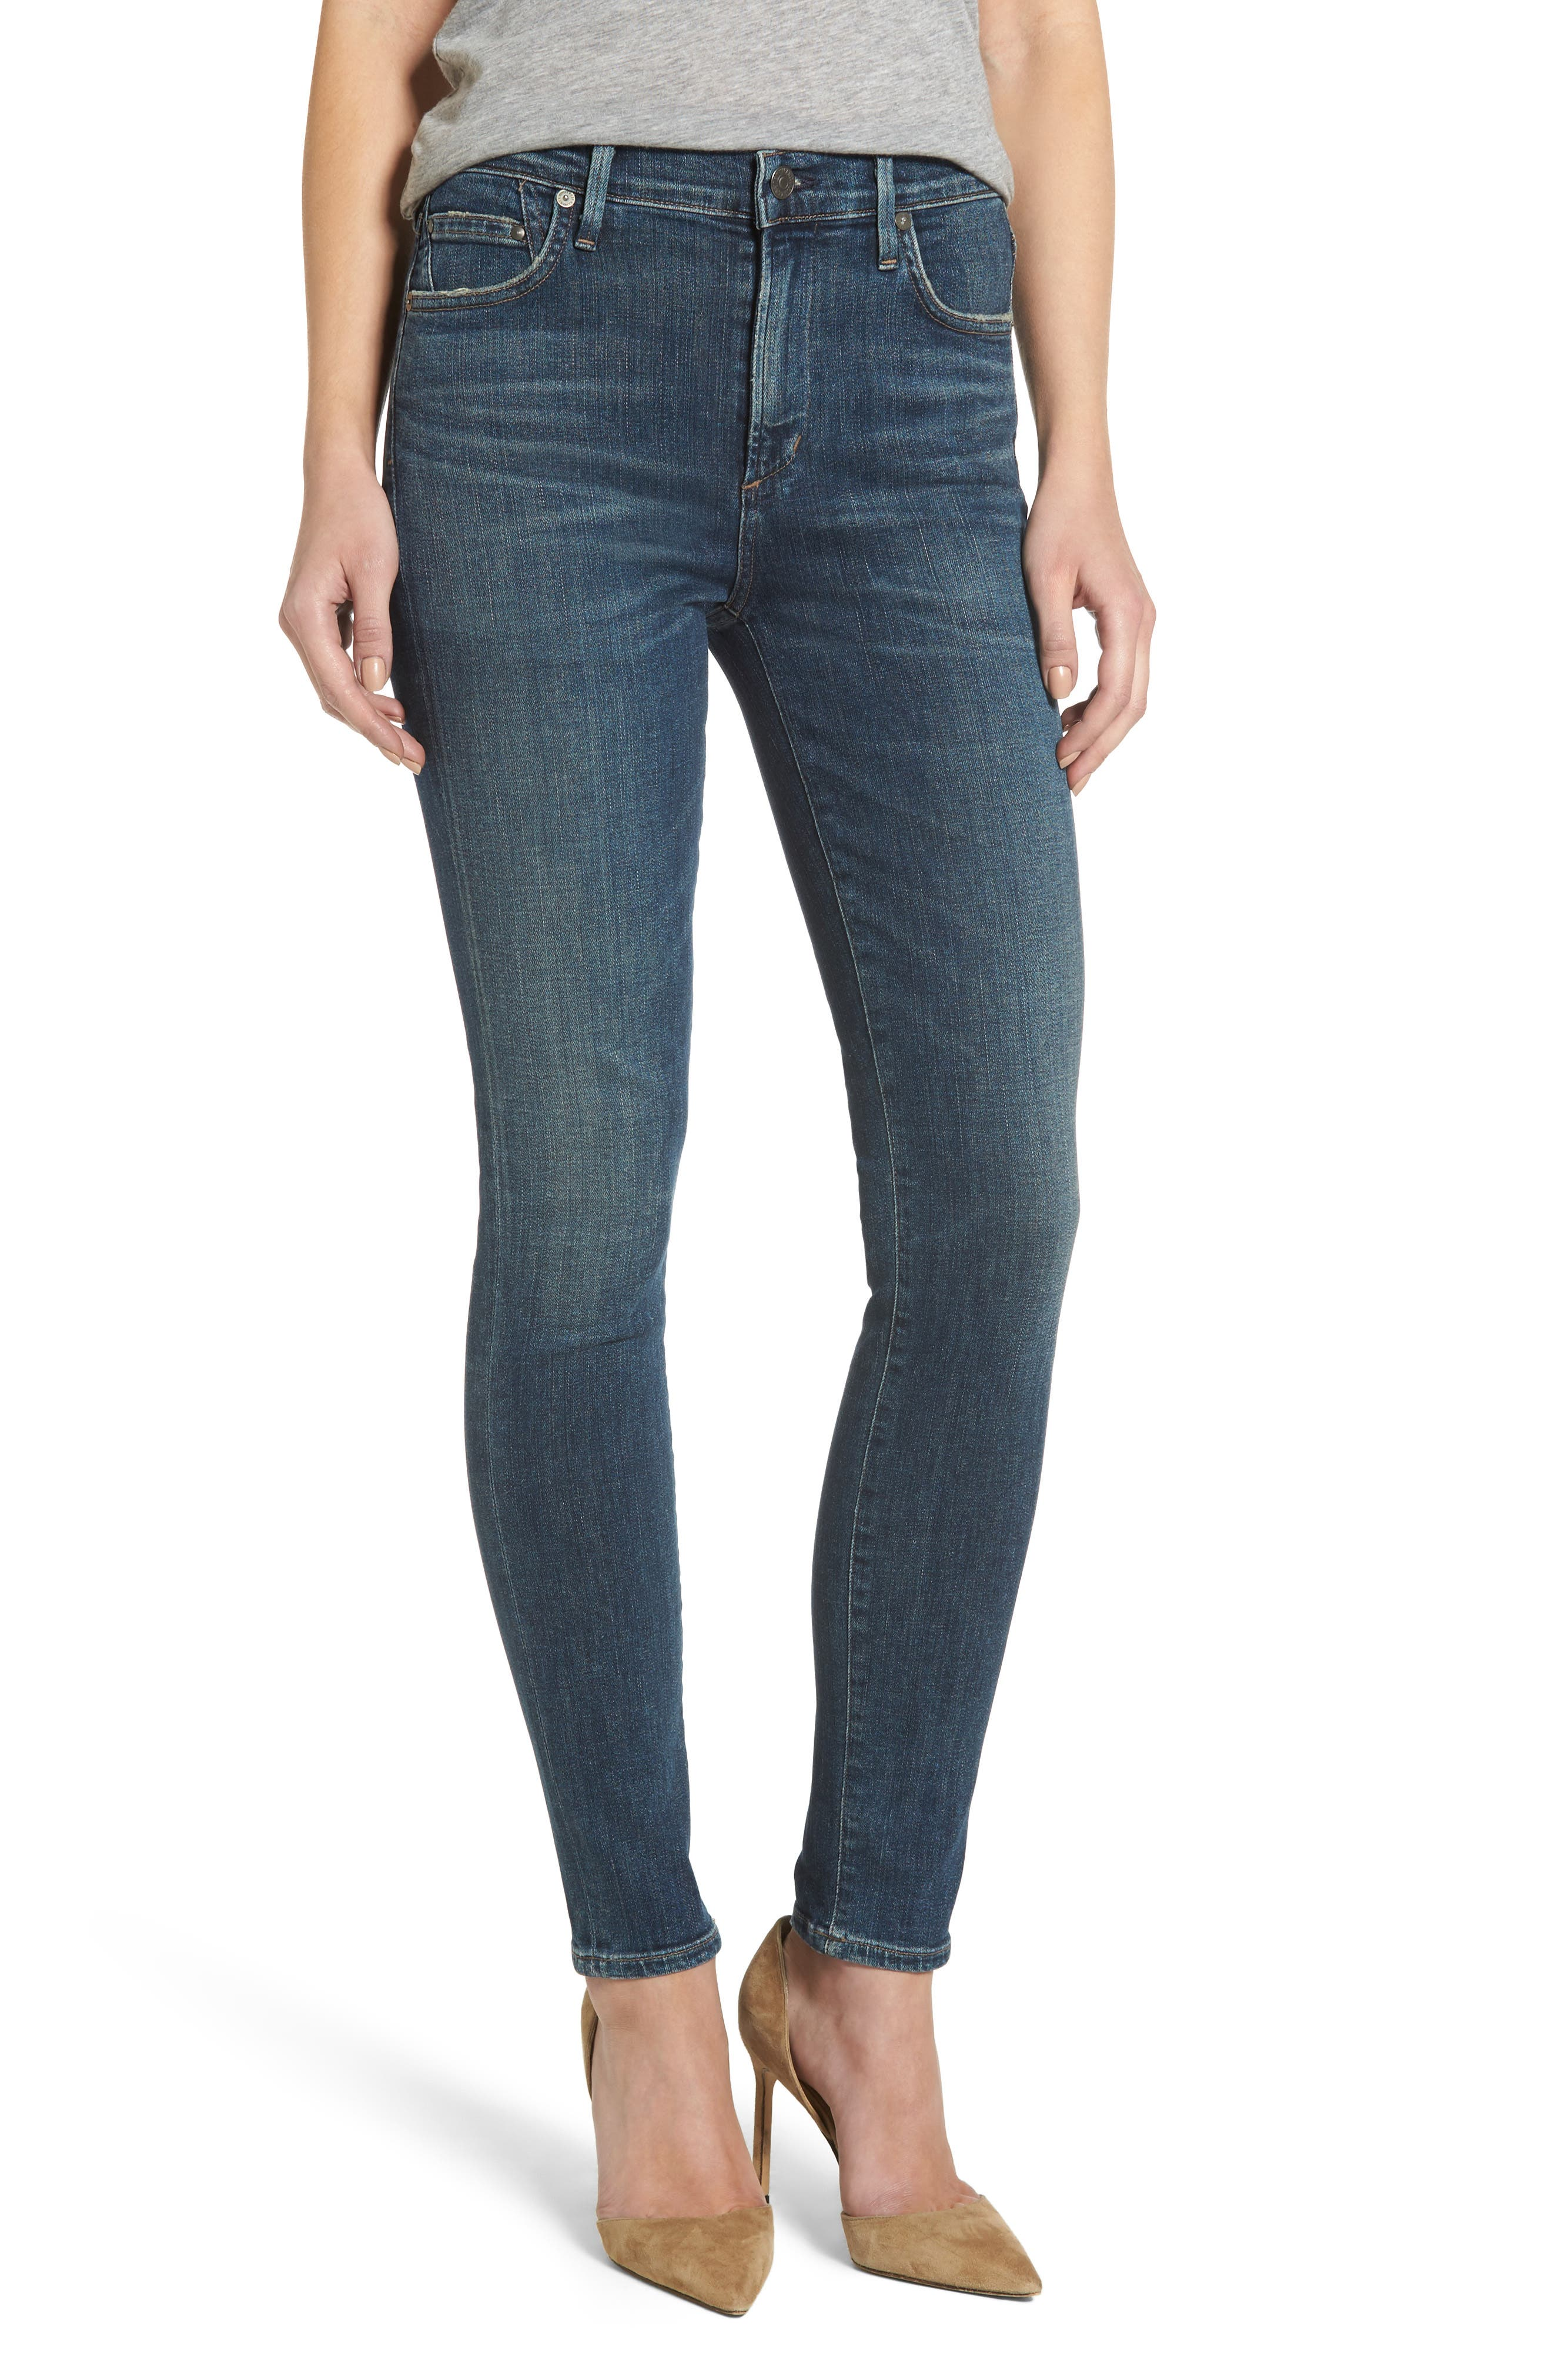 Rocket High Waist Skinny Jeans,                         Main,                         color, Rival